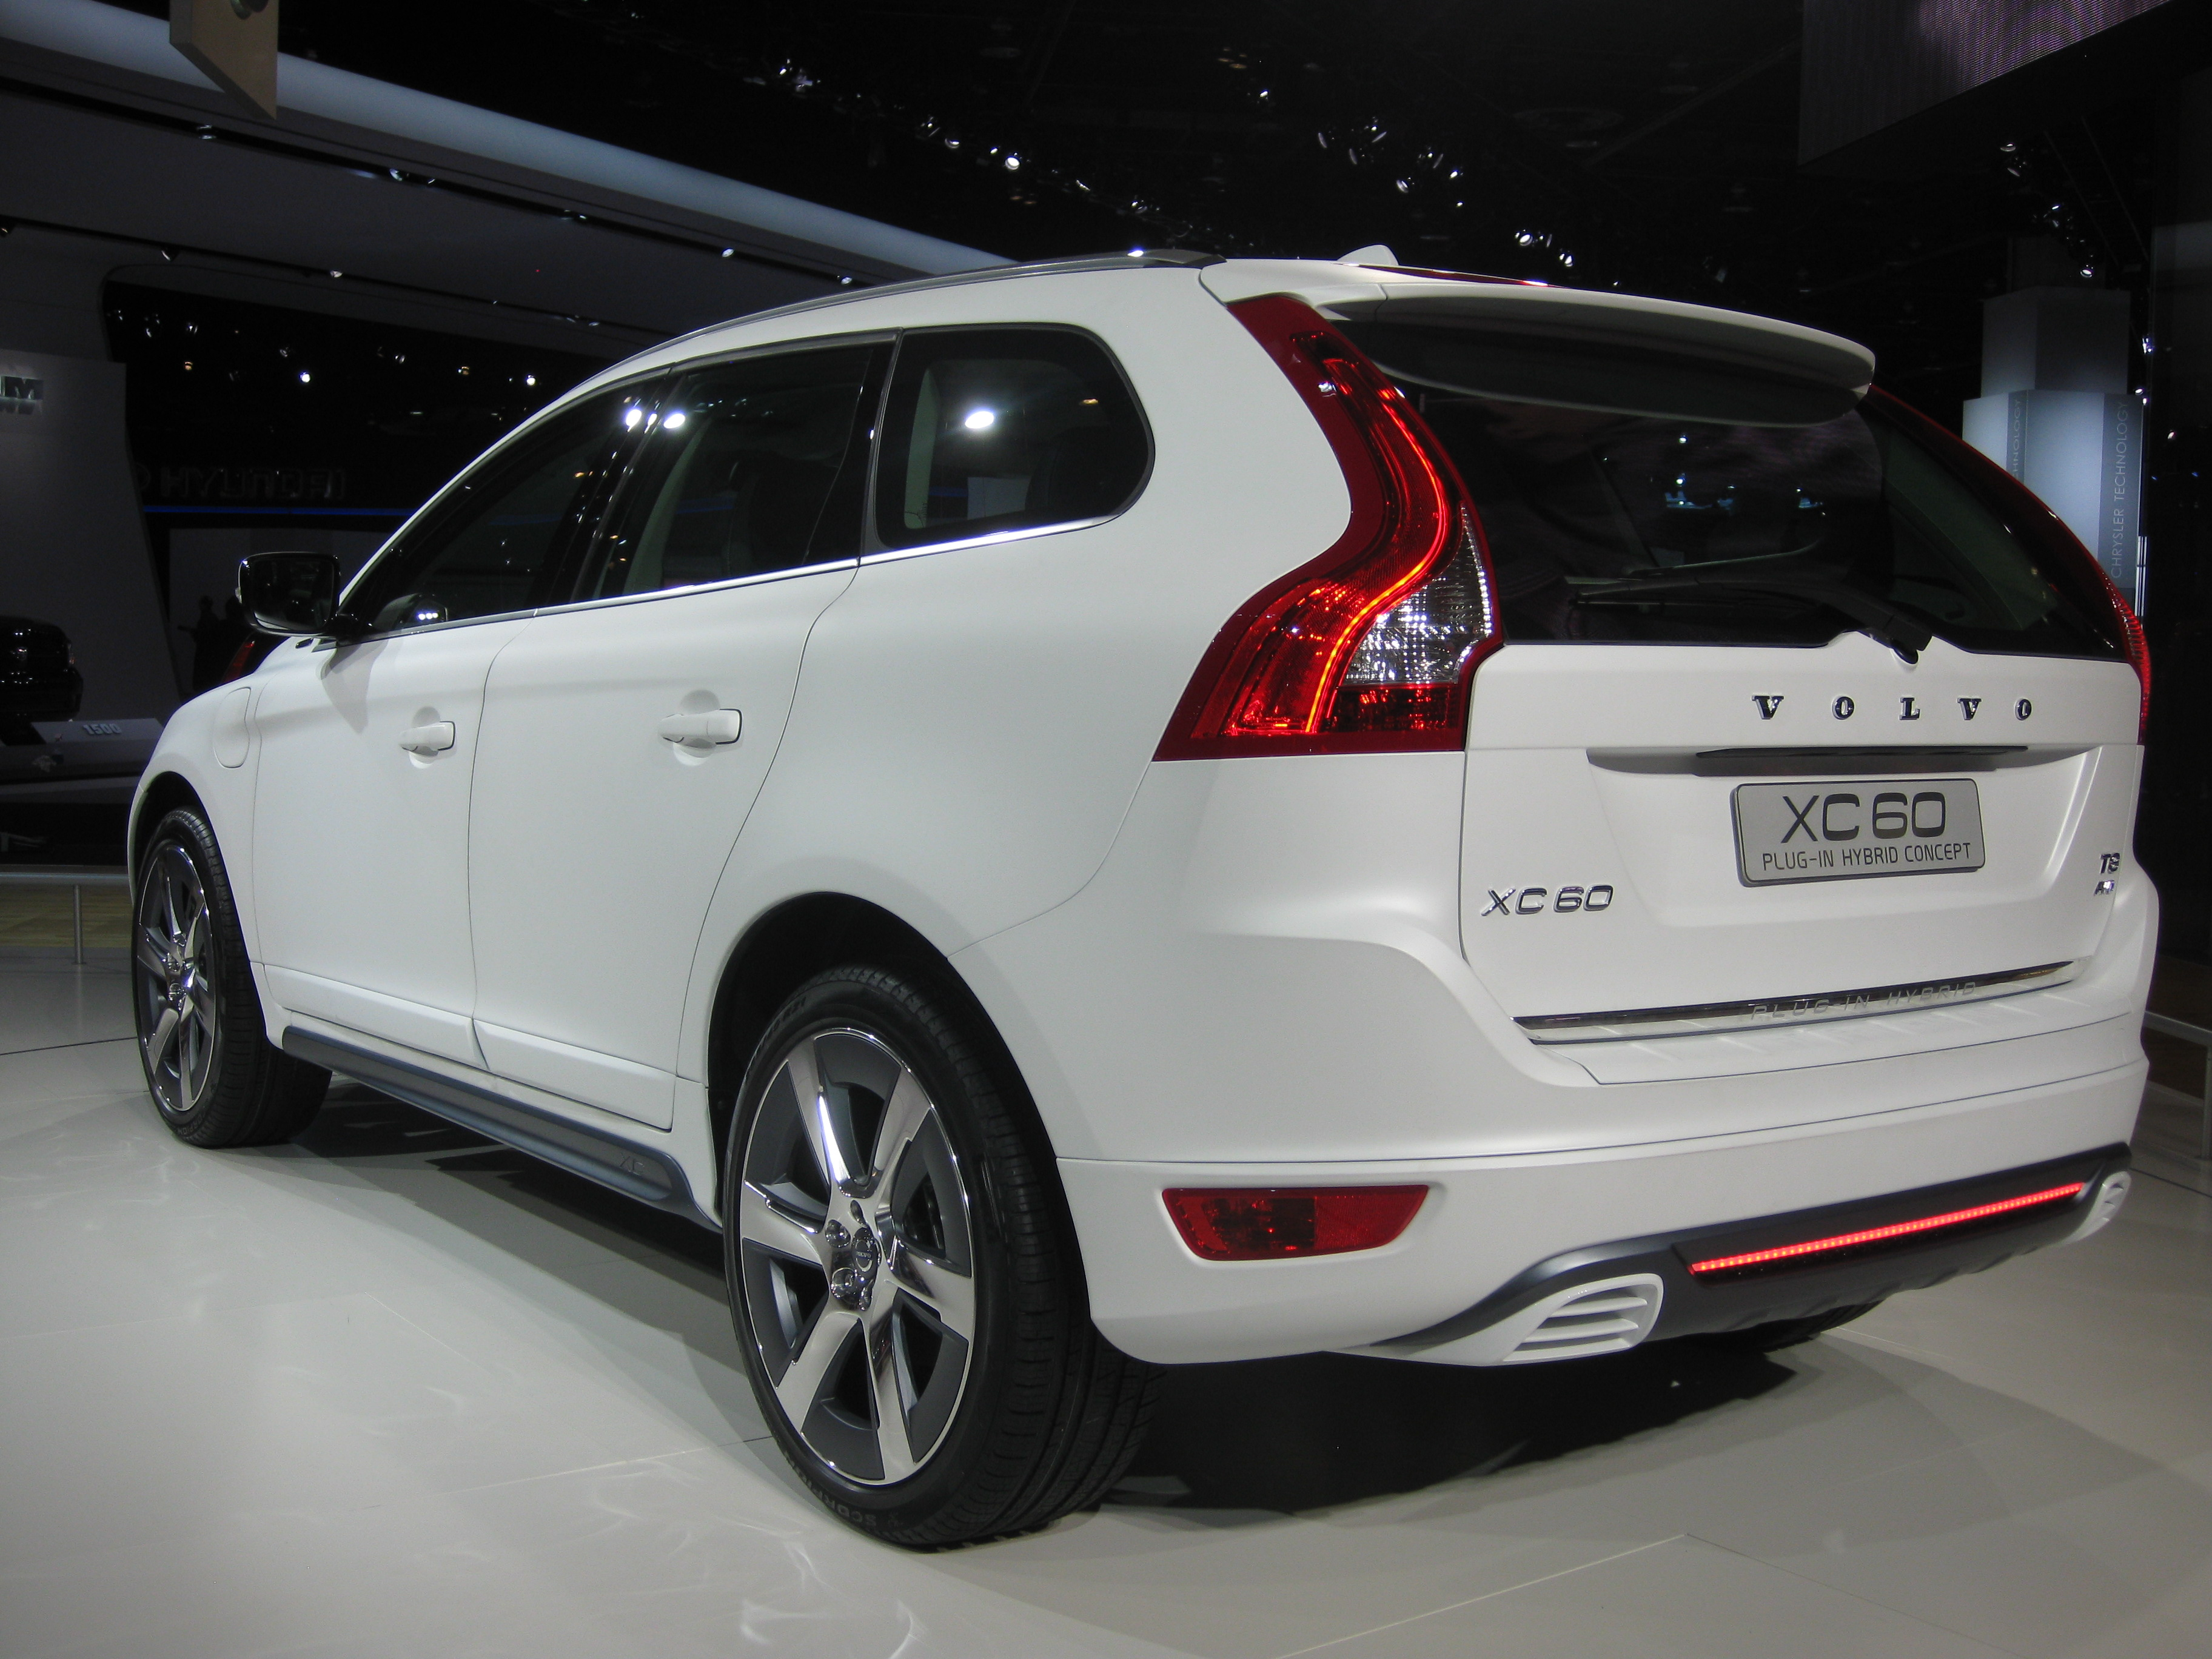 File Volvo Xc60 Plug In Hybrid At Naias 2012 6683633701 Jpg Wikimedia Commons